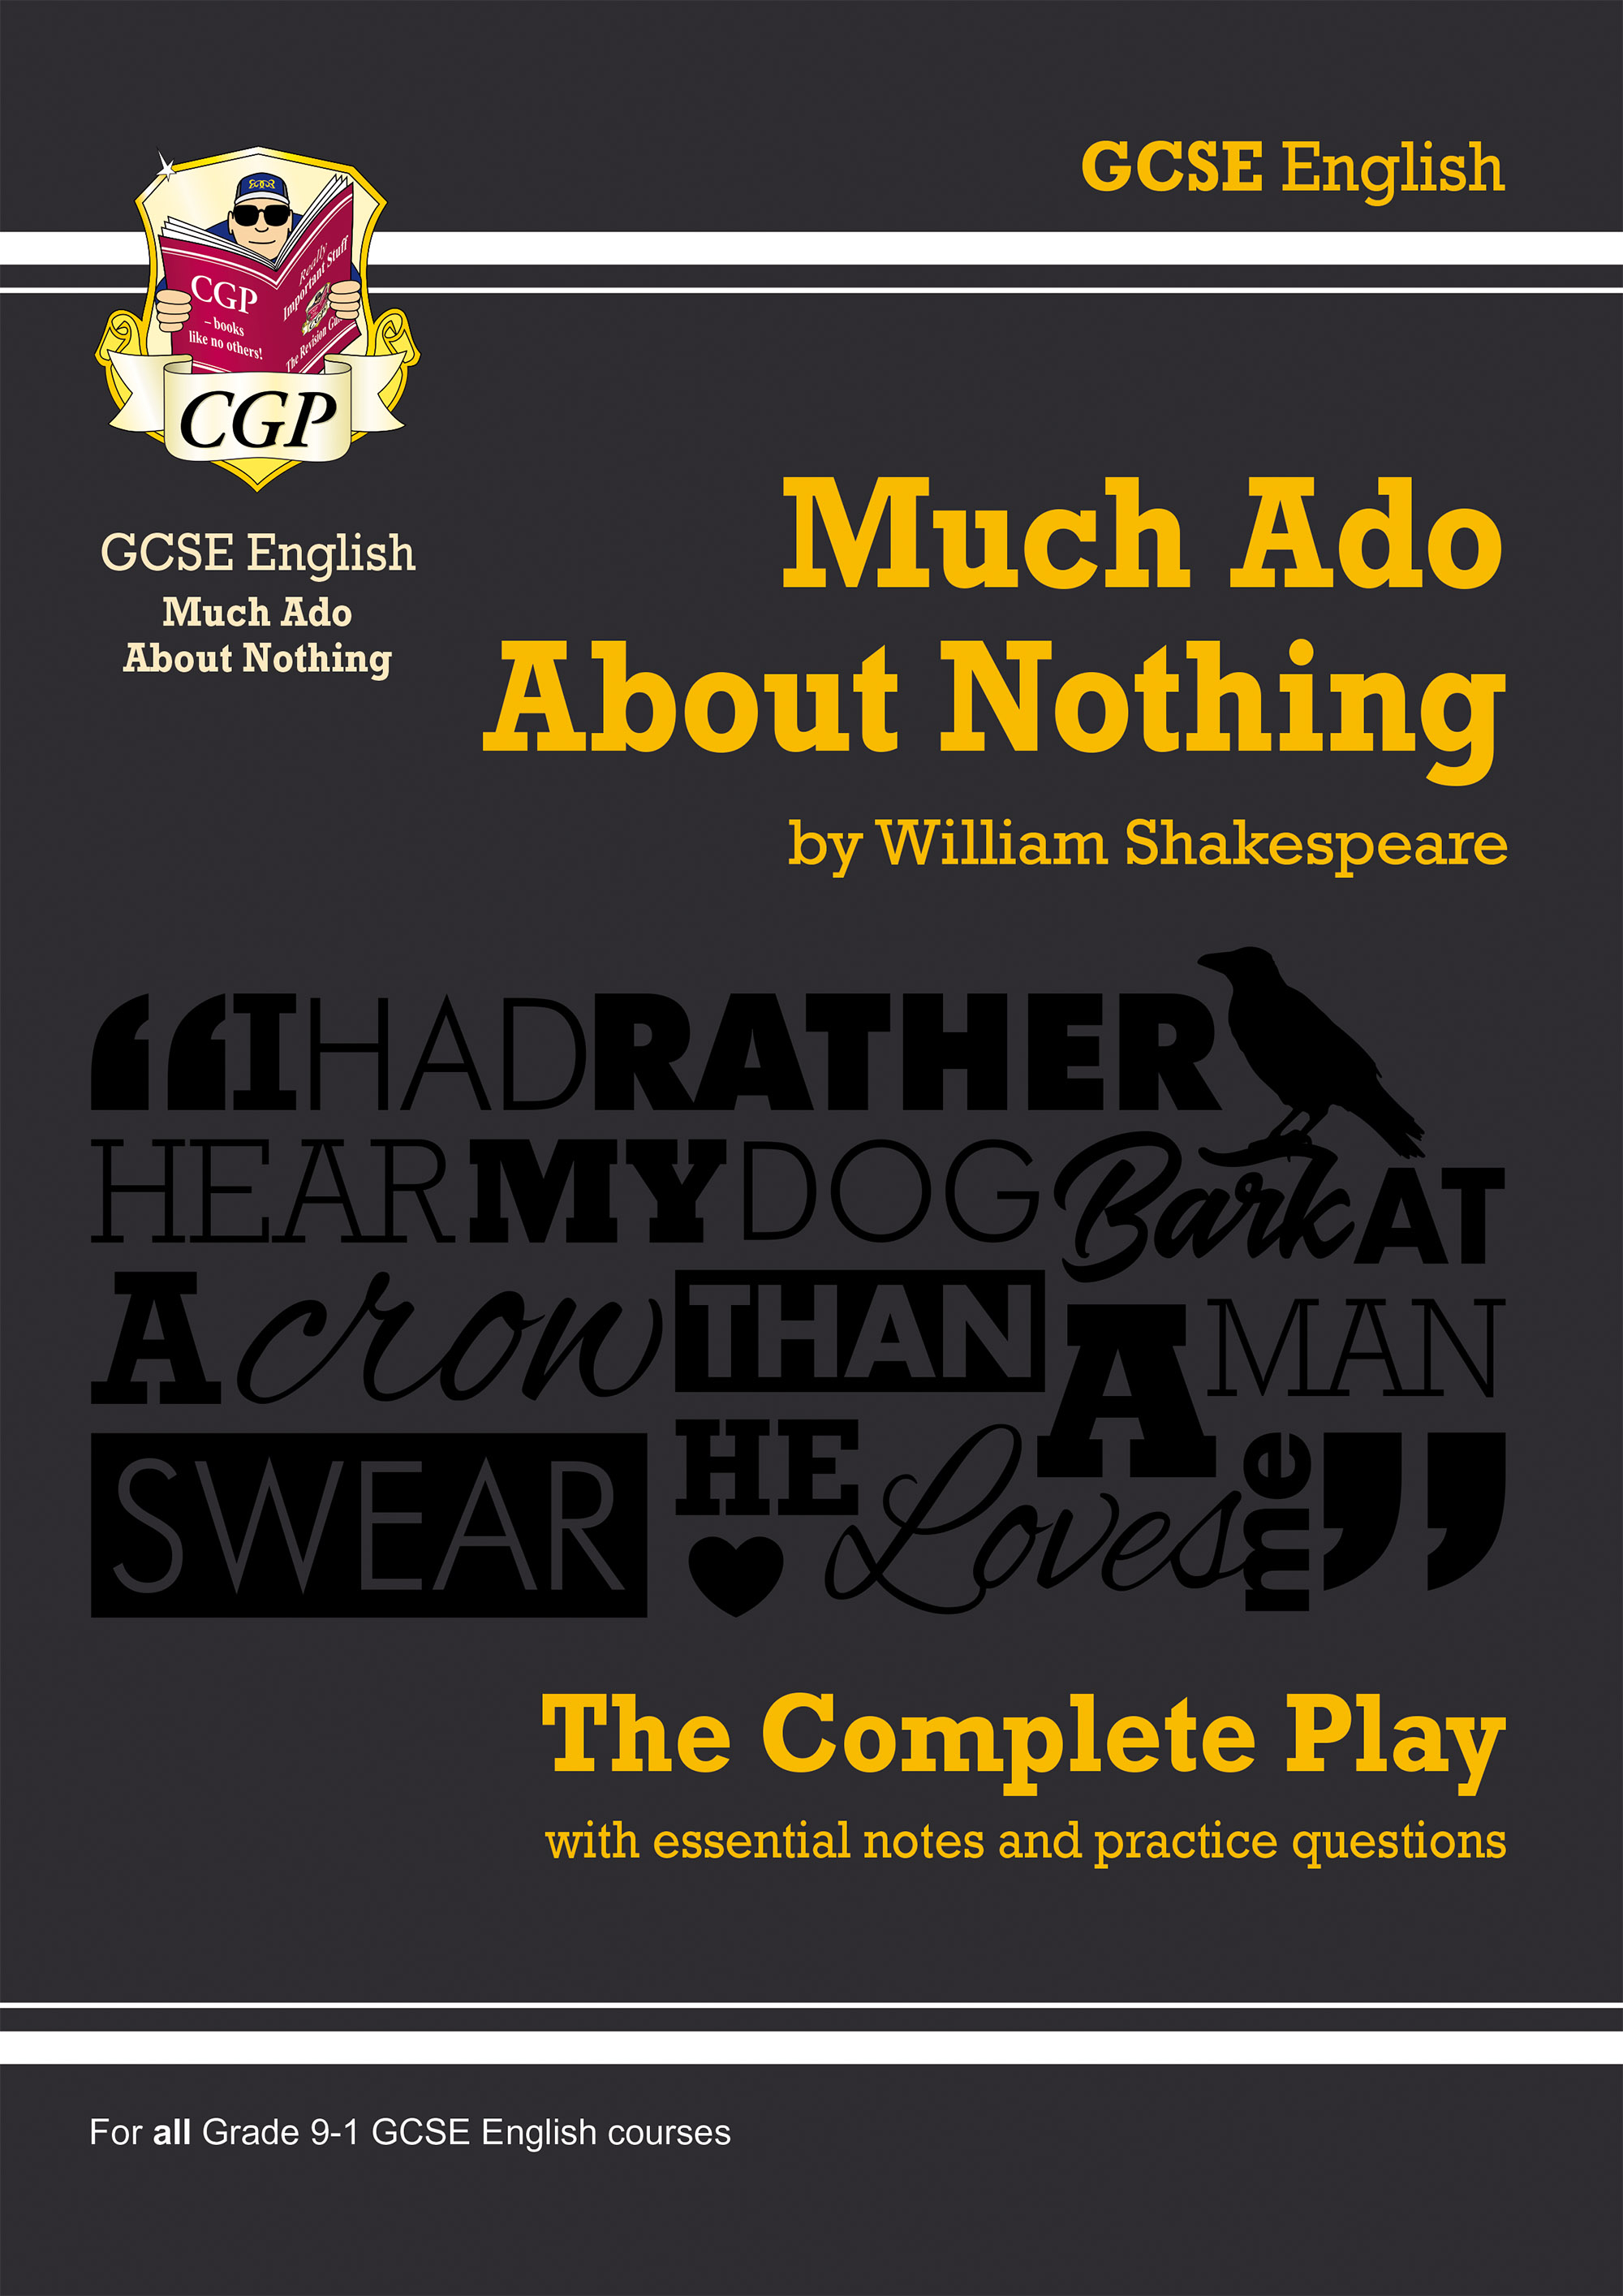 EPMA43DK - Grade 9-1 GCSE English Much Ado About Nothing - The Complete Play